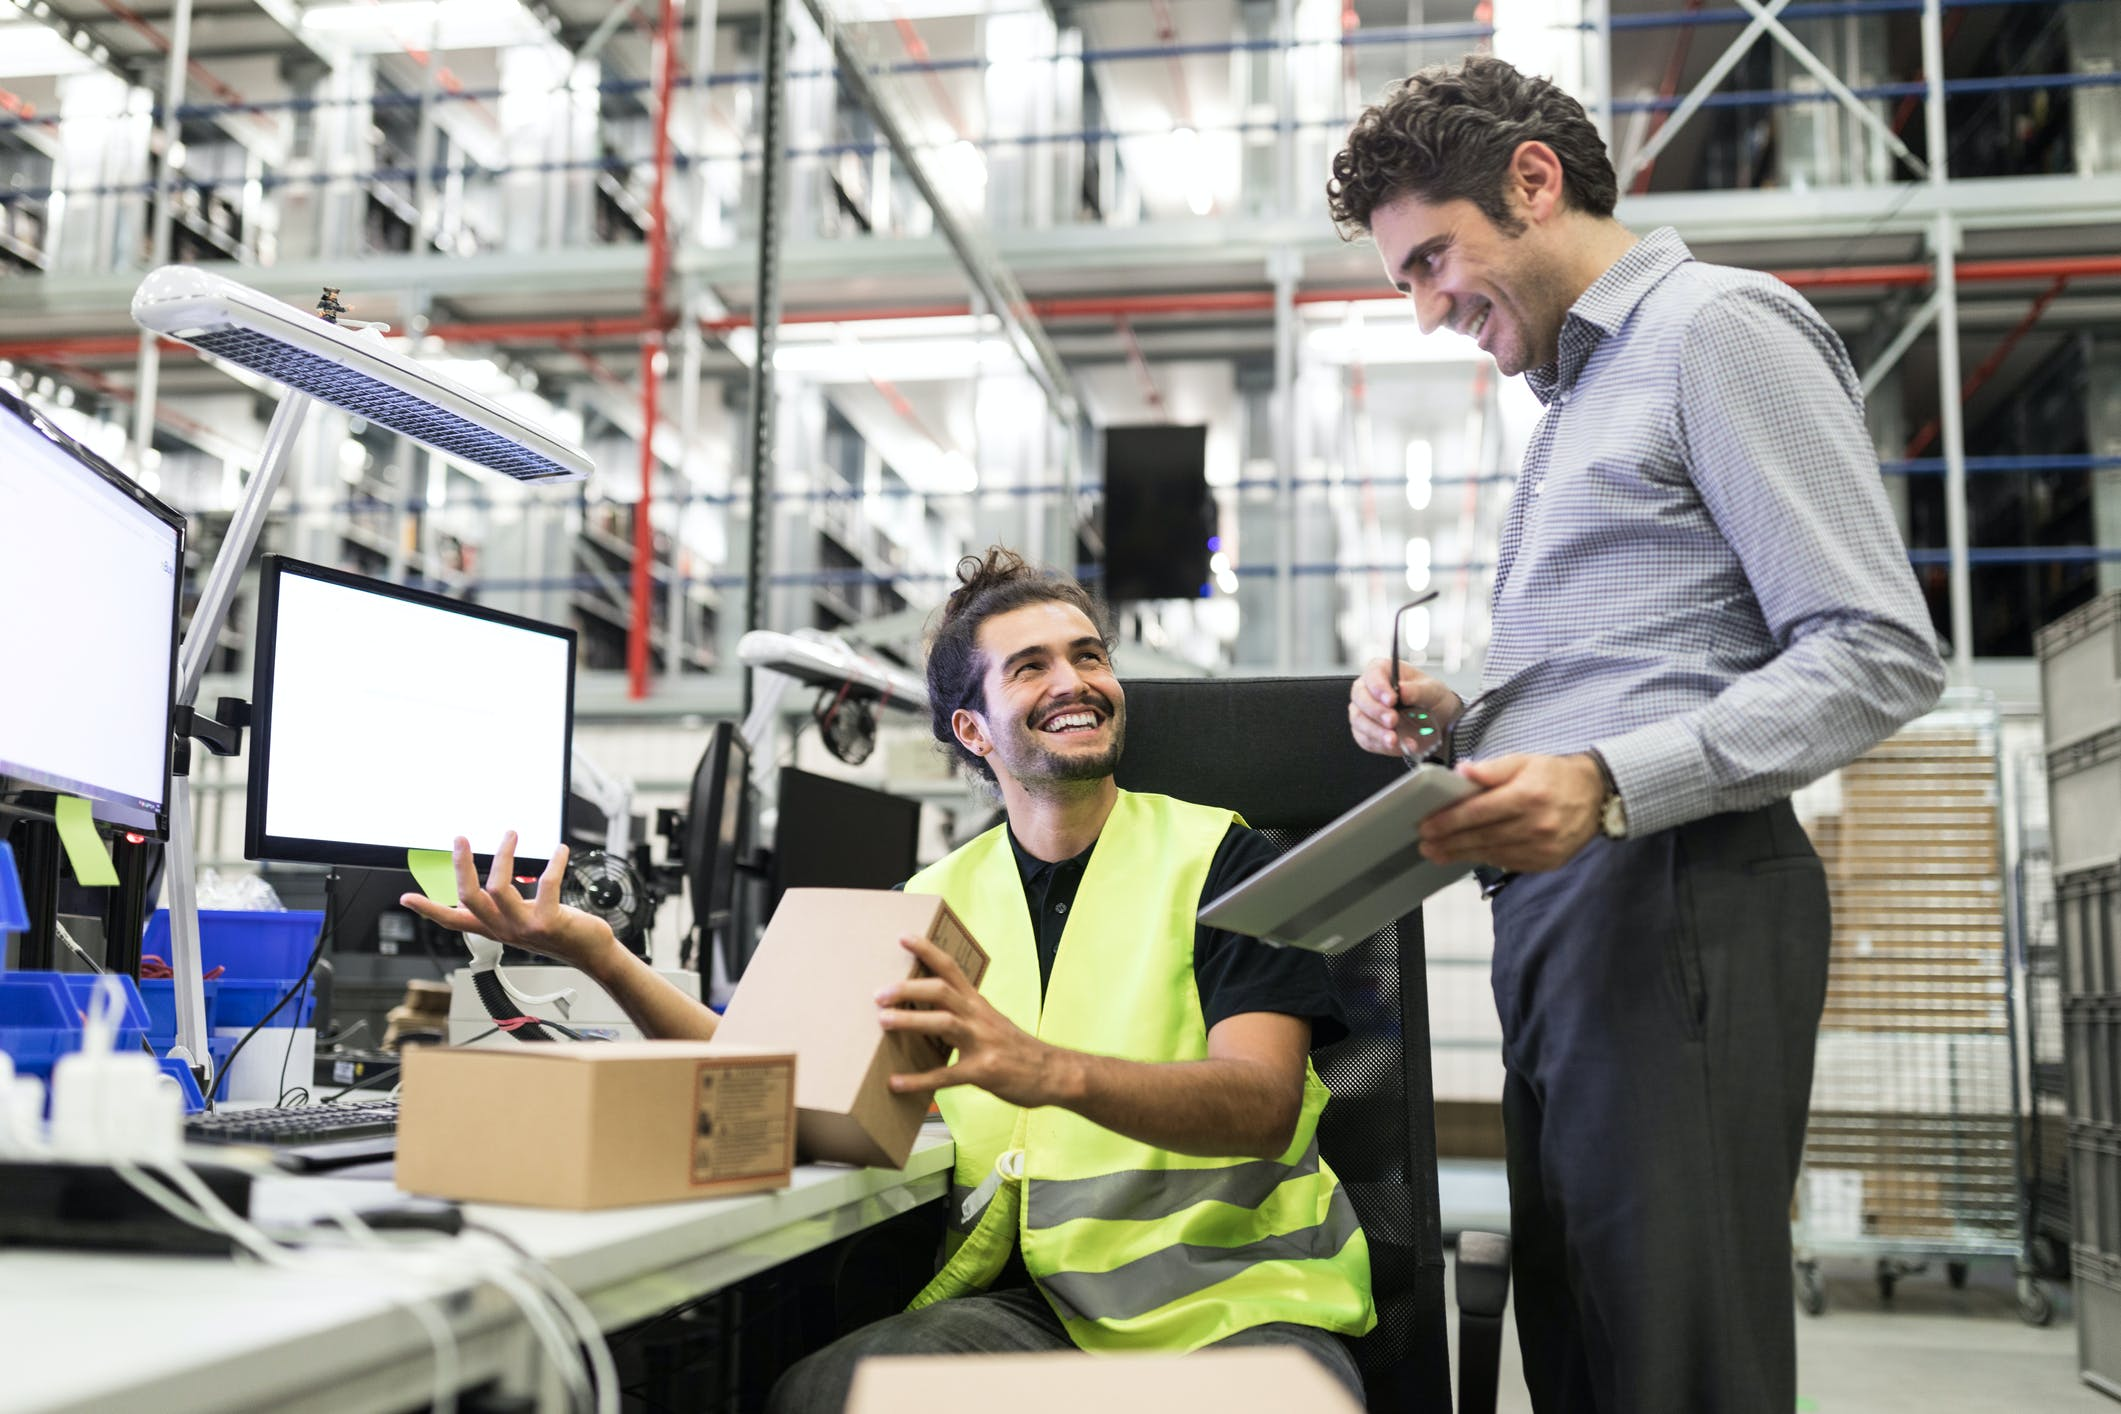 A happy employee with his boss in an automated warehouse.